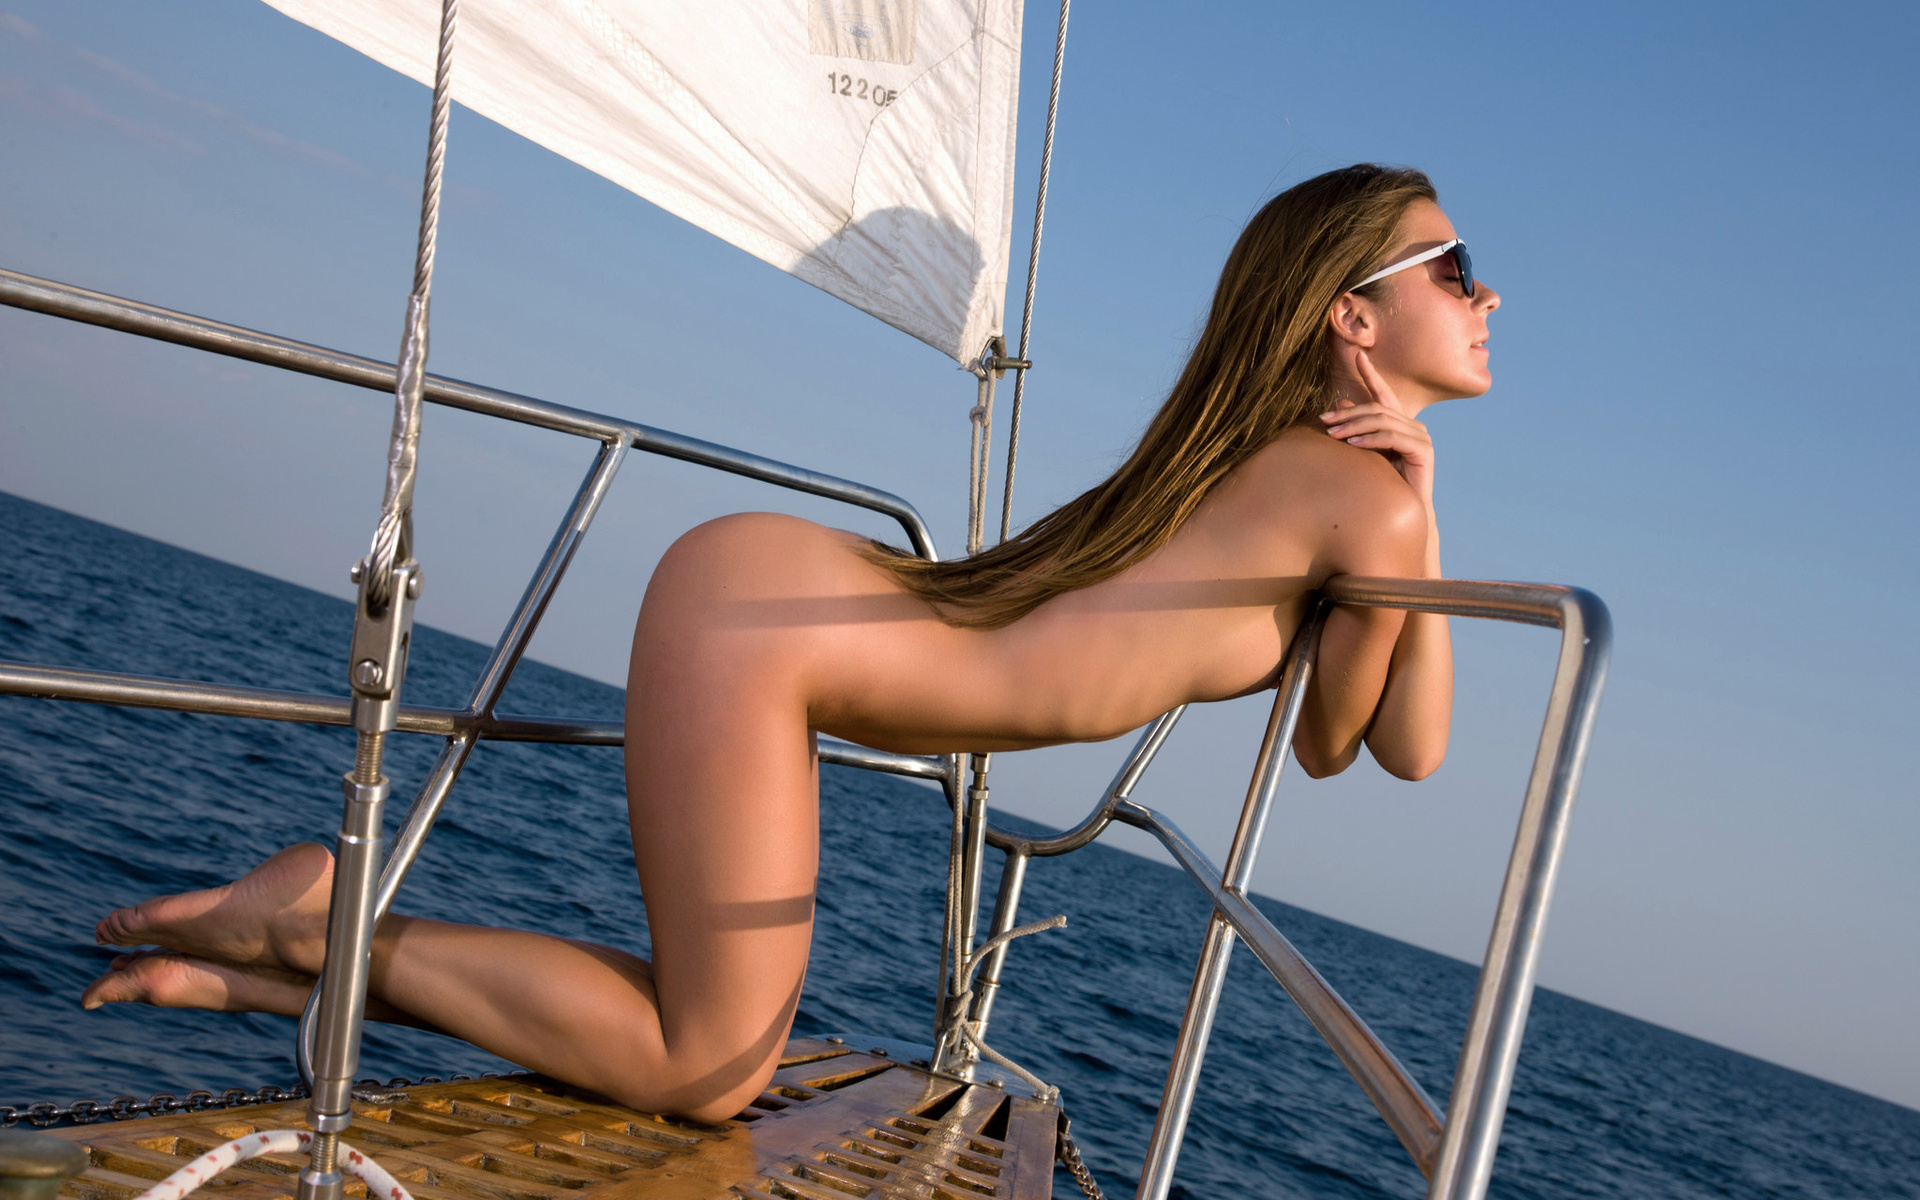 Hot xxx girls and boats, miley cyrus pussy